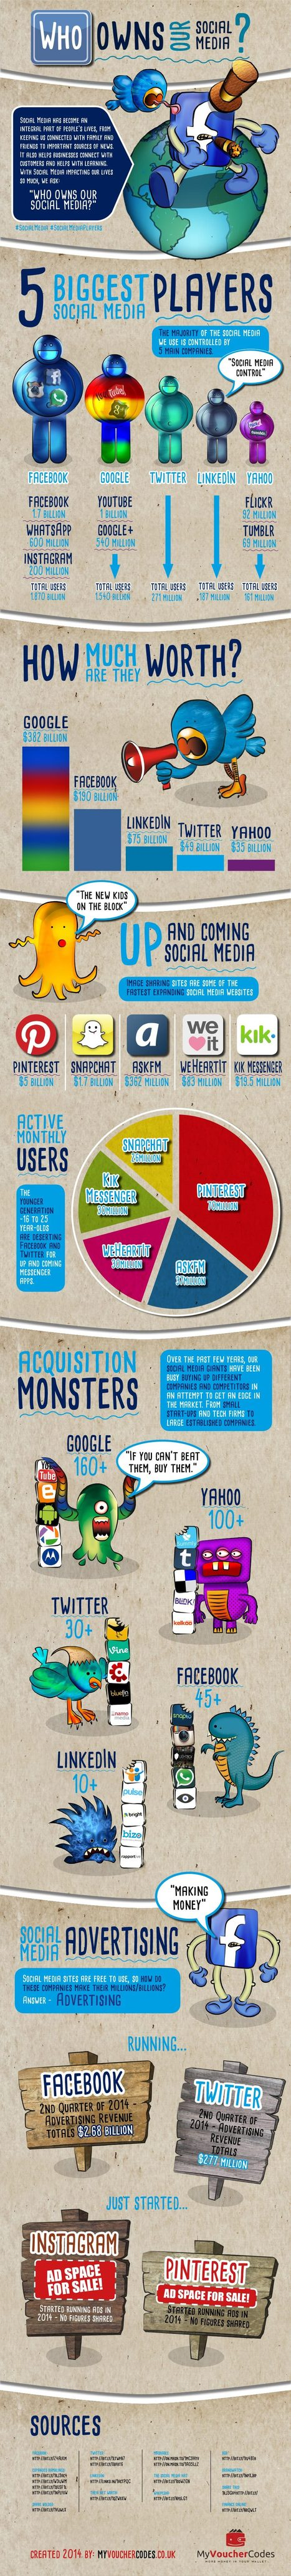 Who Owns Social Media? [INFOGRAPHIC] | Salud Publica | Scoop.it